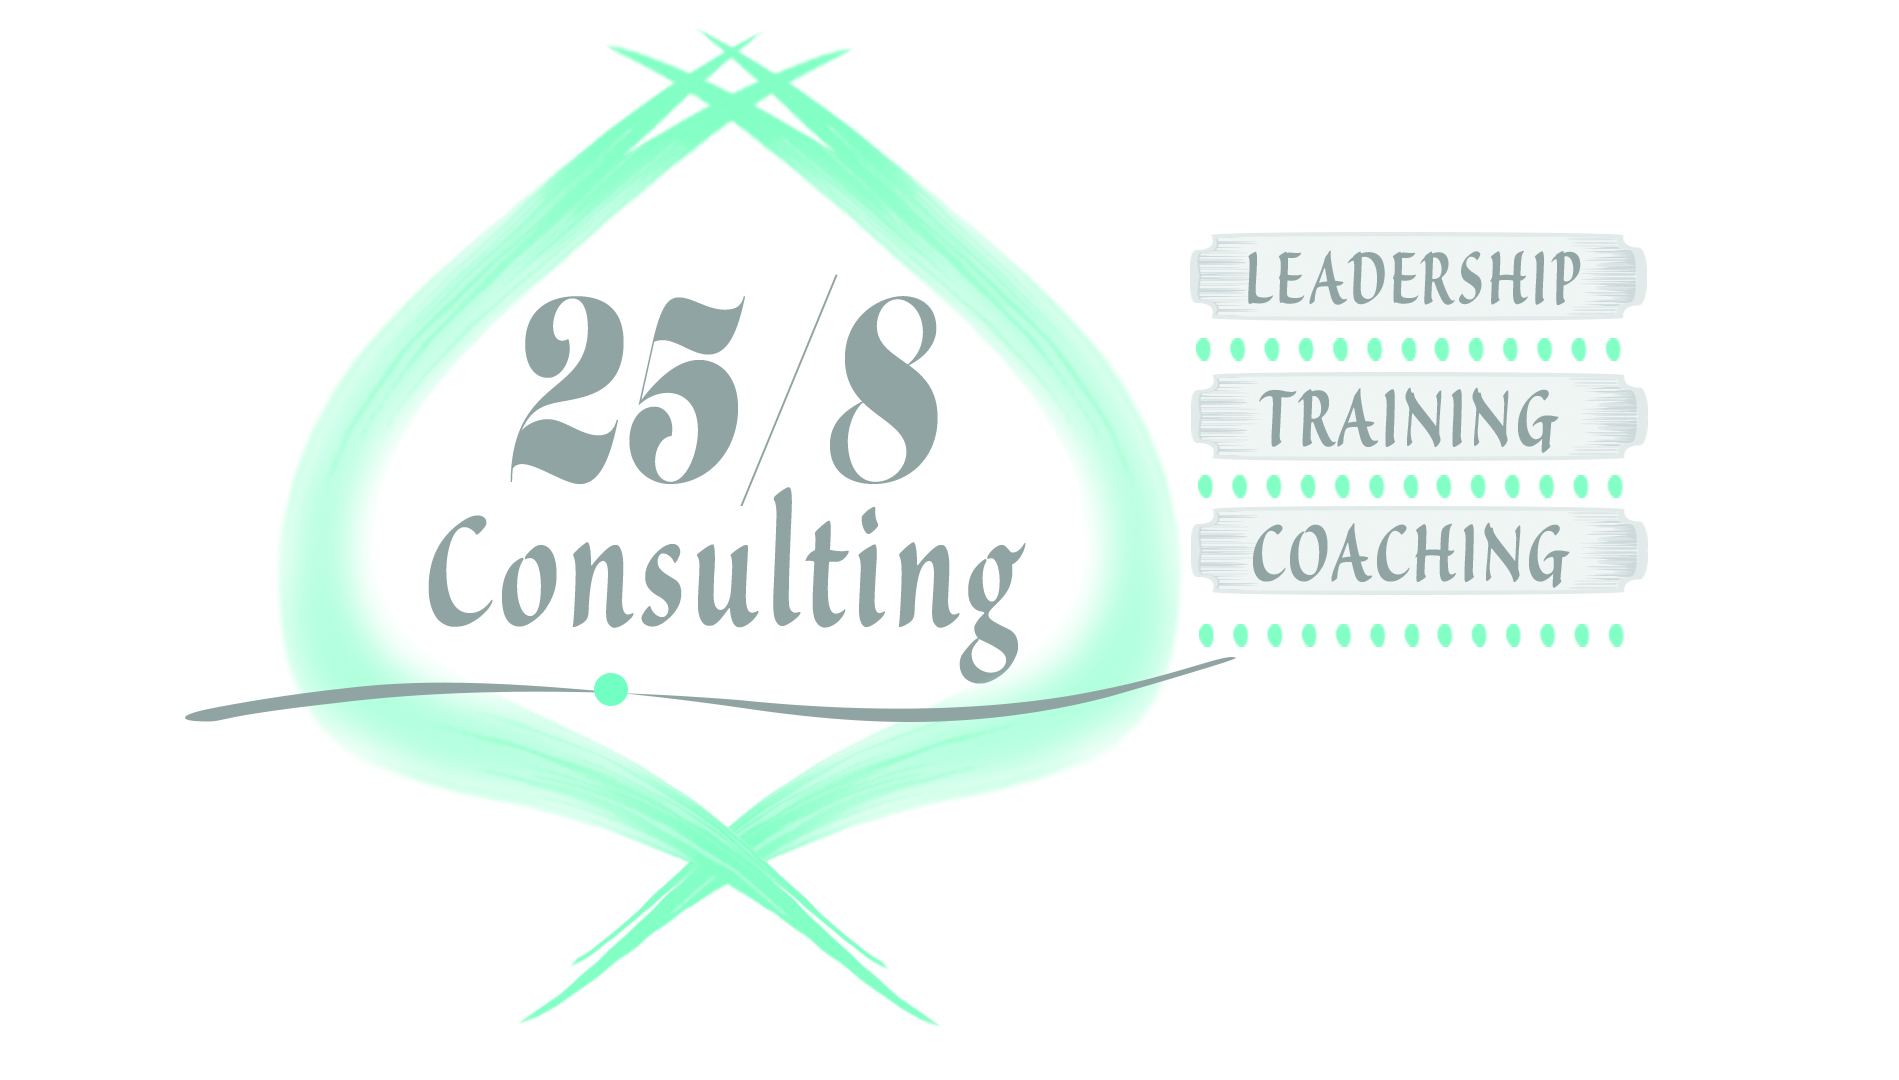 25-8 Consulting